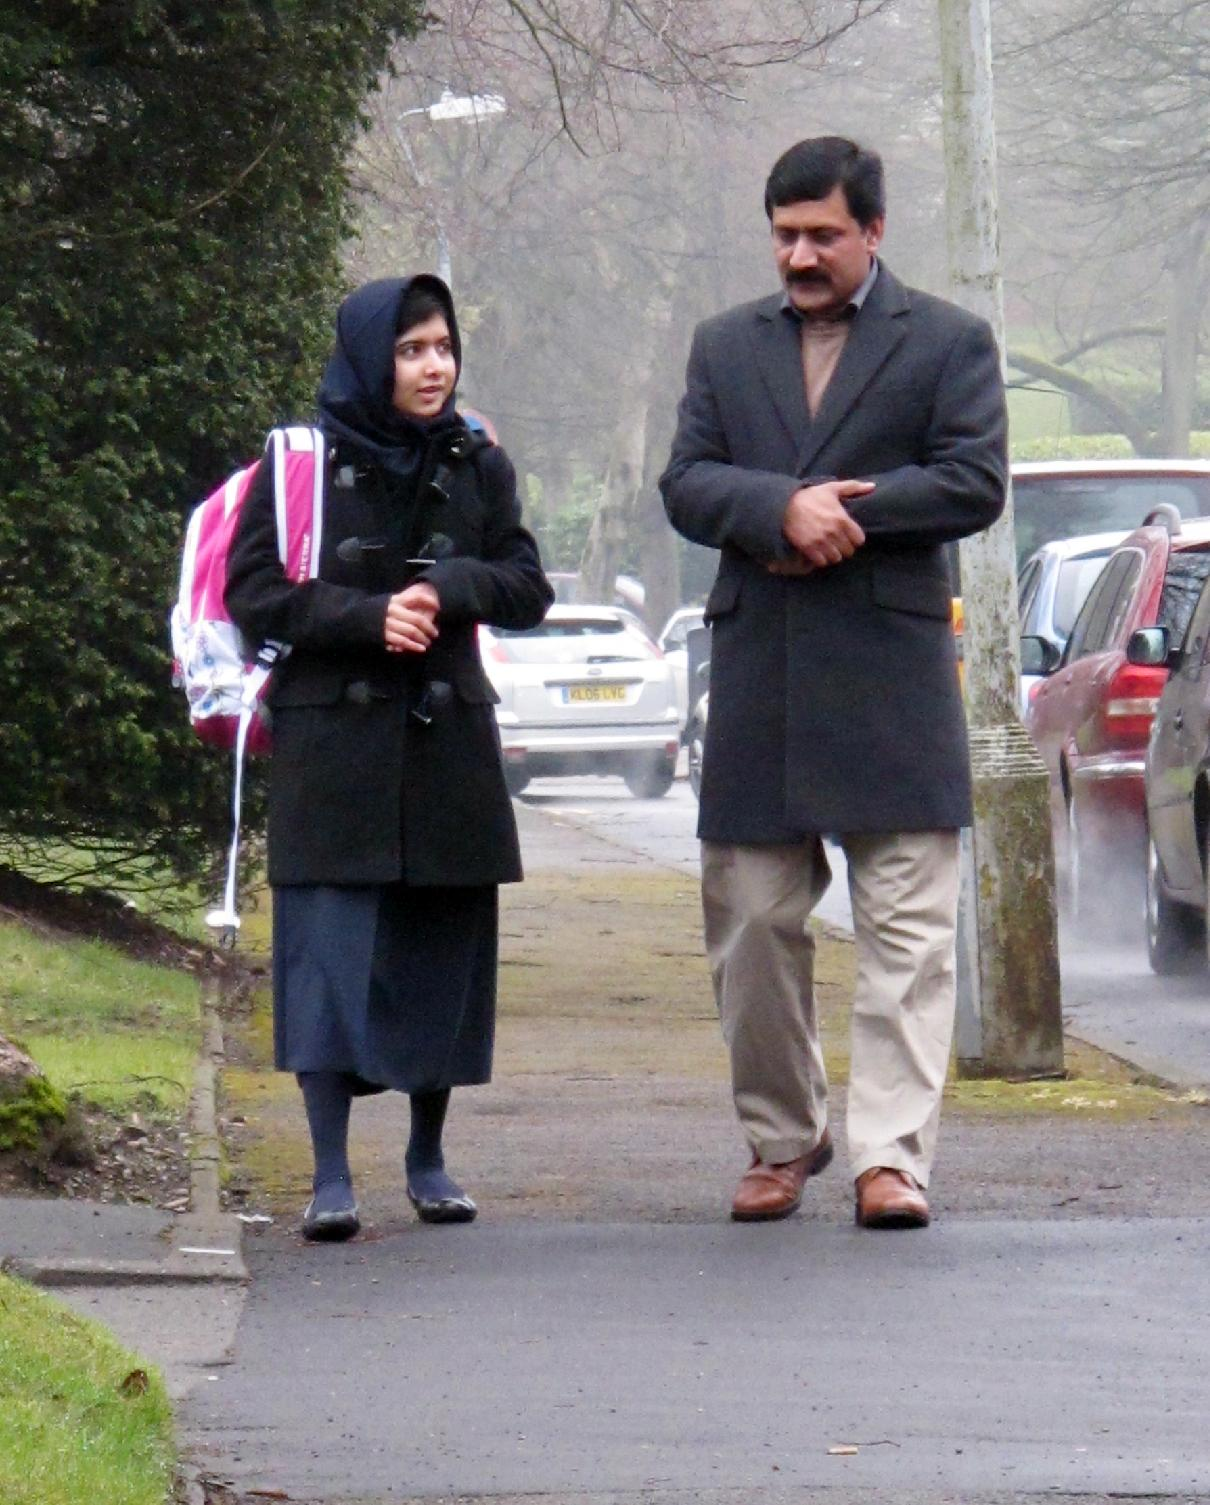 Image made available by her press office of Malala Yousafzai, the Pakistani schoolgirl shot in the head by the Taliban, with her father Ziauddin, as she attends her first day of school on Tuesday March 19, 2013 just weeks after being released from hospital. The 15-year-old participated in lessons at the Edgbaston High School for Girls in Birmingham. She survived an assassination attempt by the fundamentalist political group in October last year and underwent hours of surgery in the UK to try and repair the damage caused by a bullet which grazed her brain. (AP Photo/ Malala Press Office)